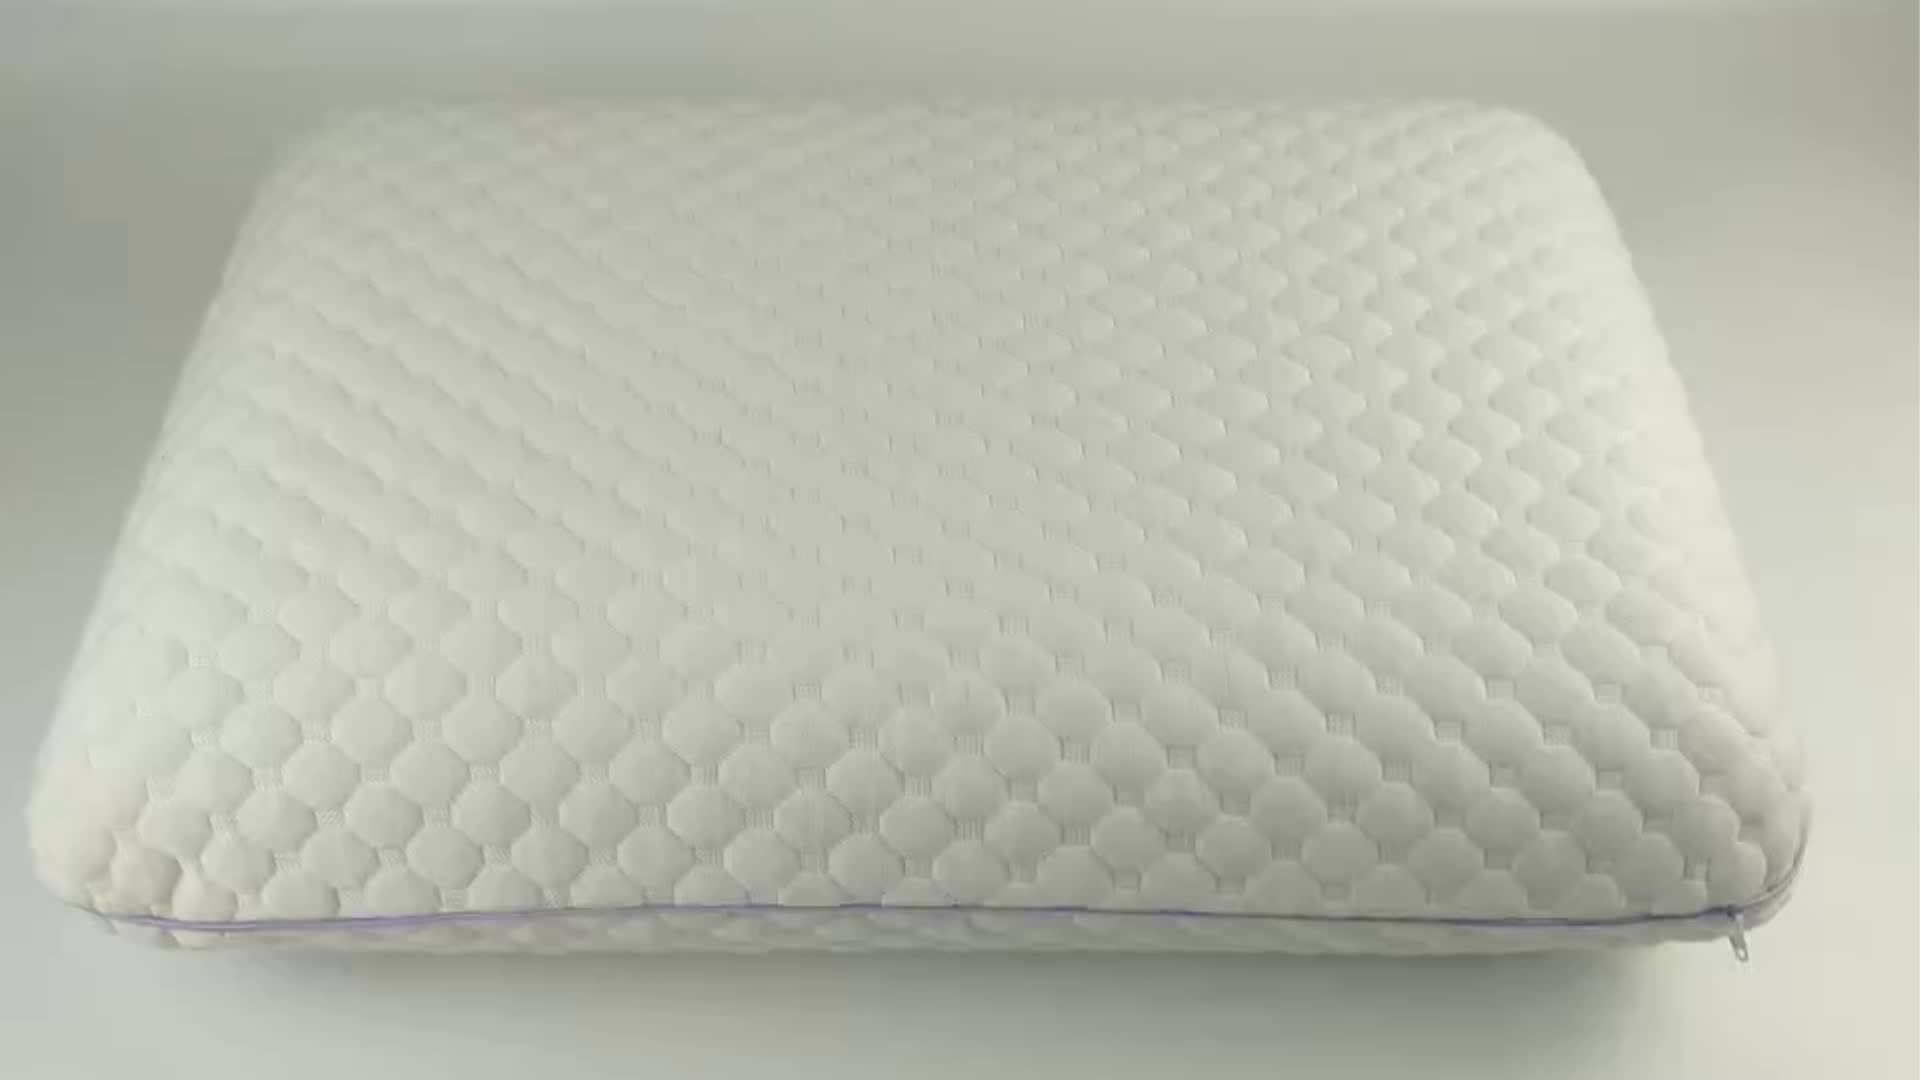 Ventilated Design Memory Foam Pillow with Airflow Channels and Stretch Knit Removable Cover